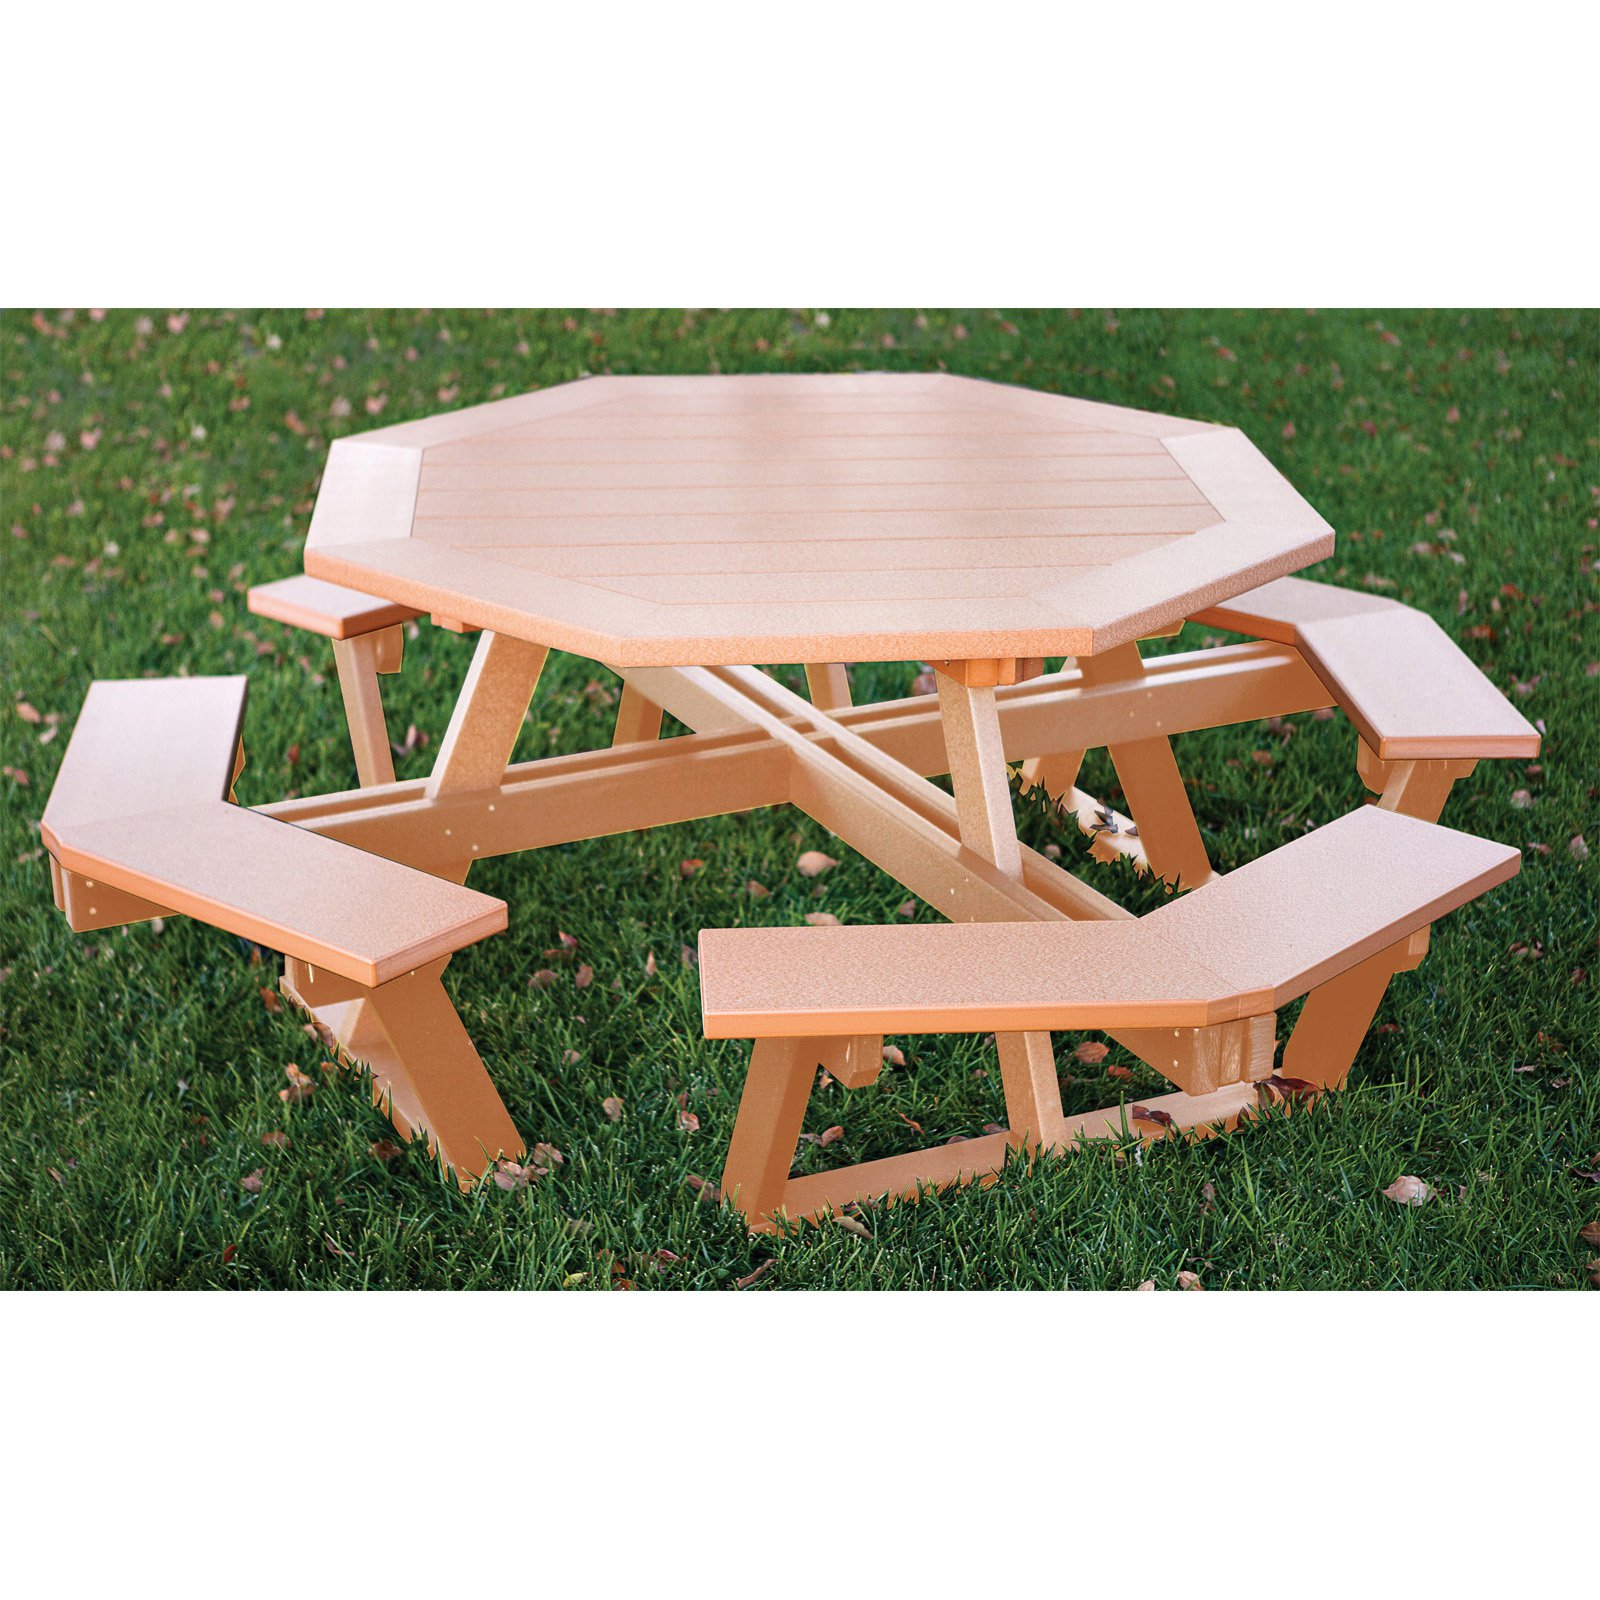 Eagle One Octagon All Greenwood Recycled Plastic Picnic